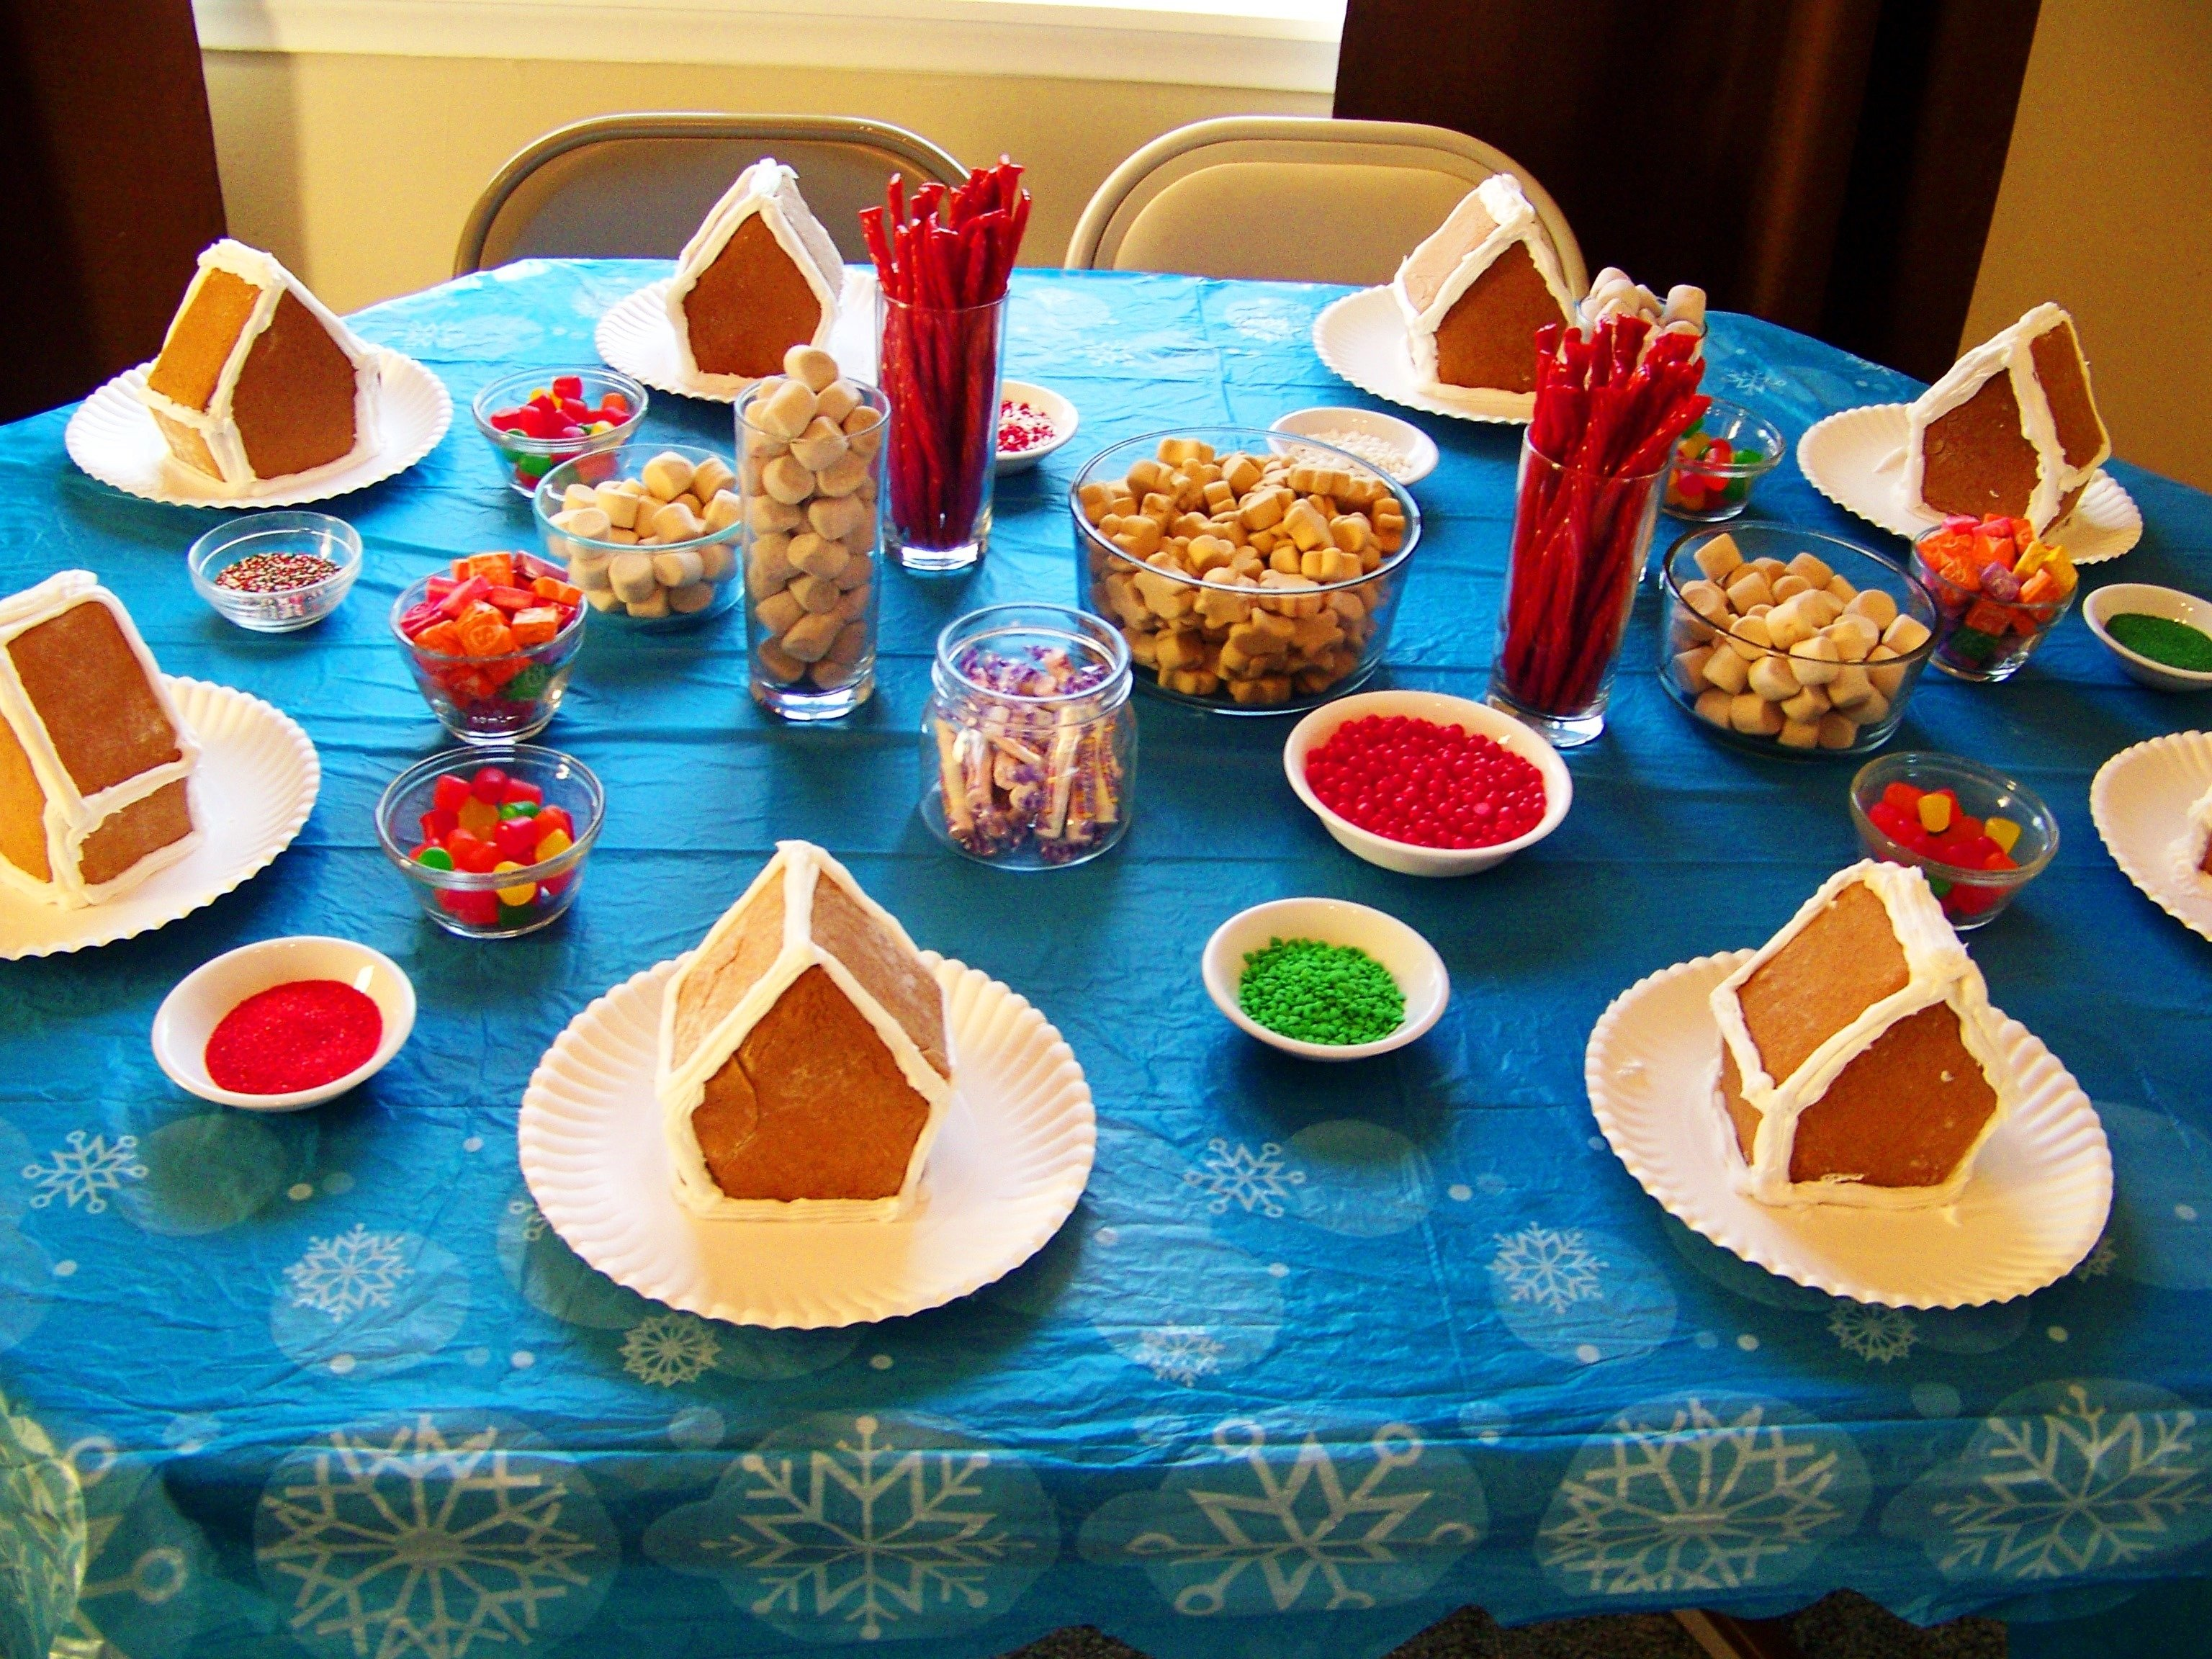 10 Fashionable Gingerbread House Decorating Party Ideas wordless wednesday gingerbread house decorating party my crazy 2020